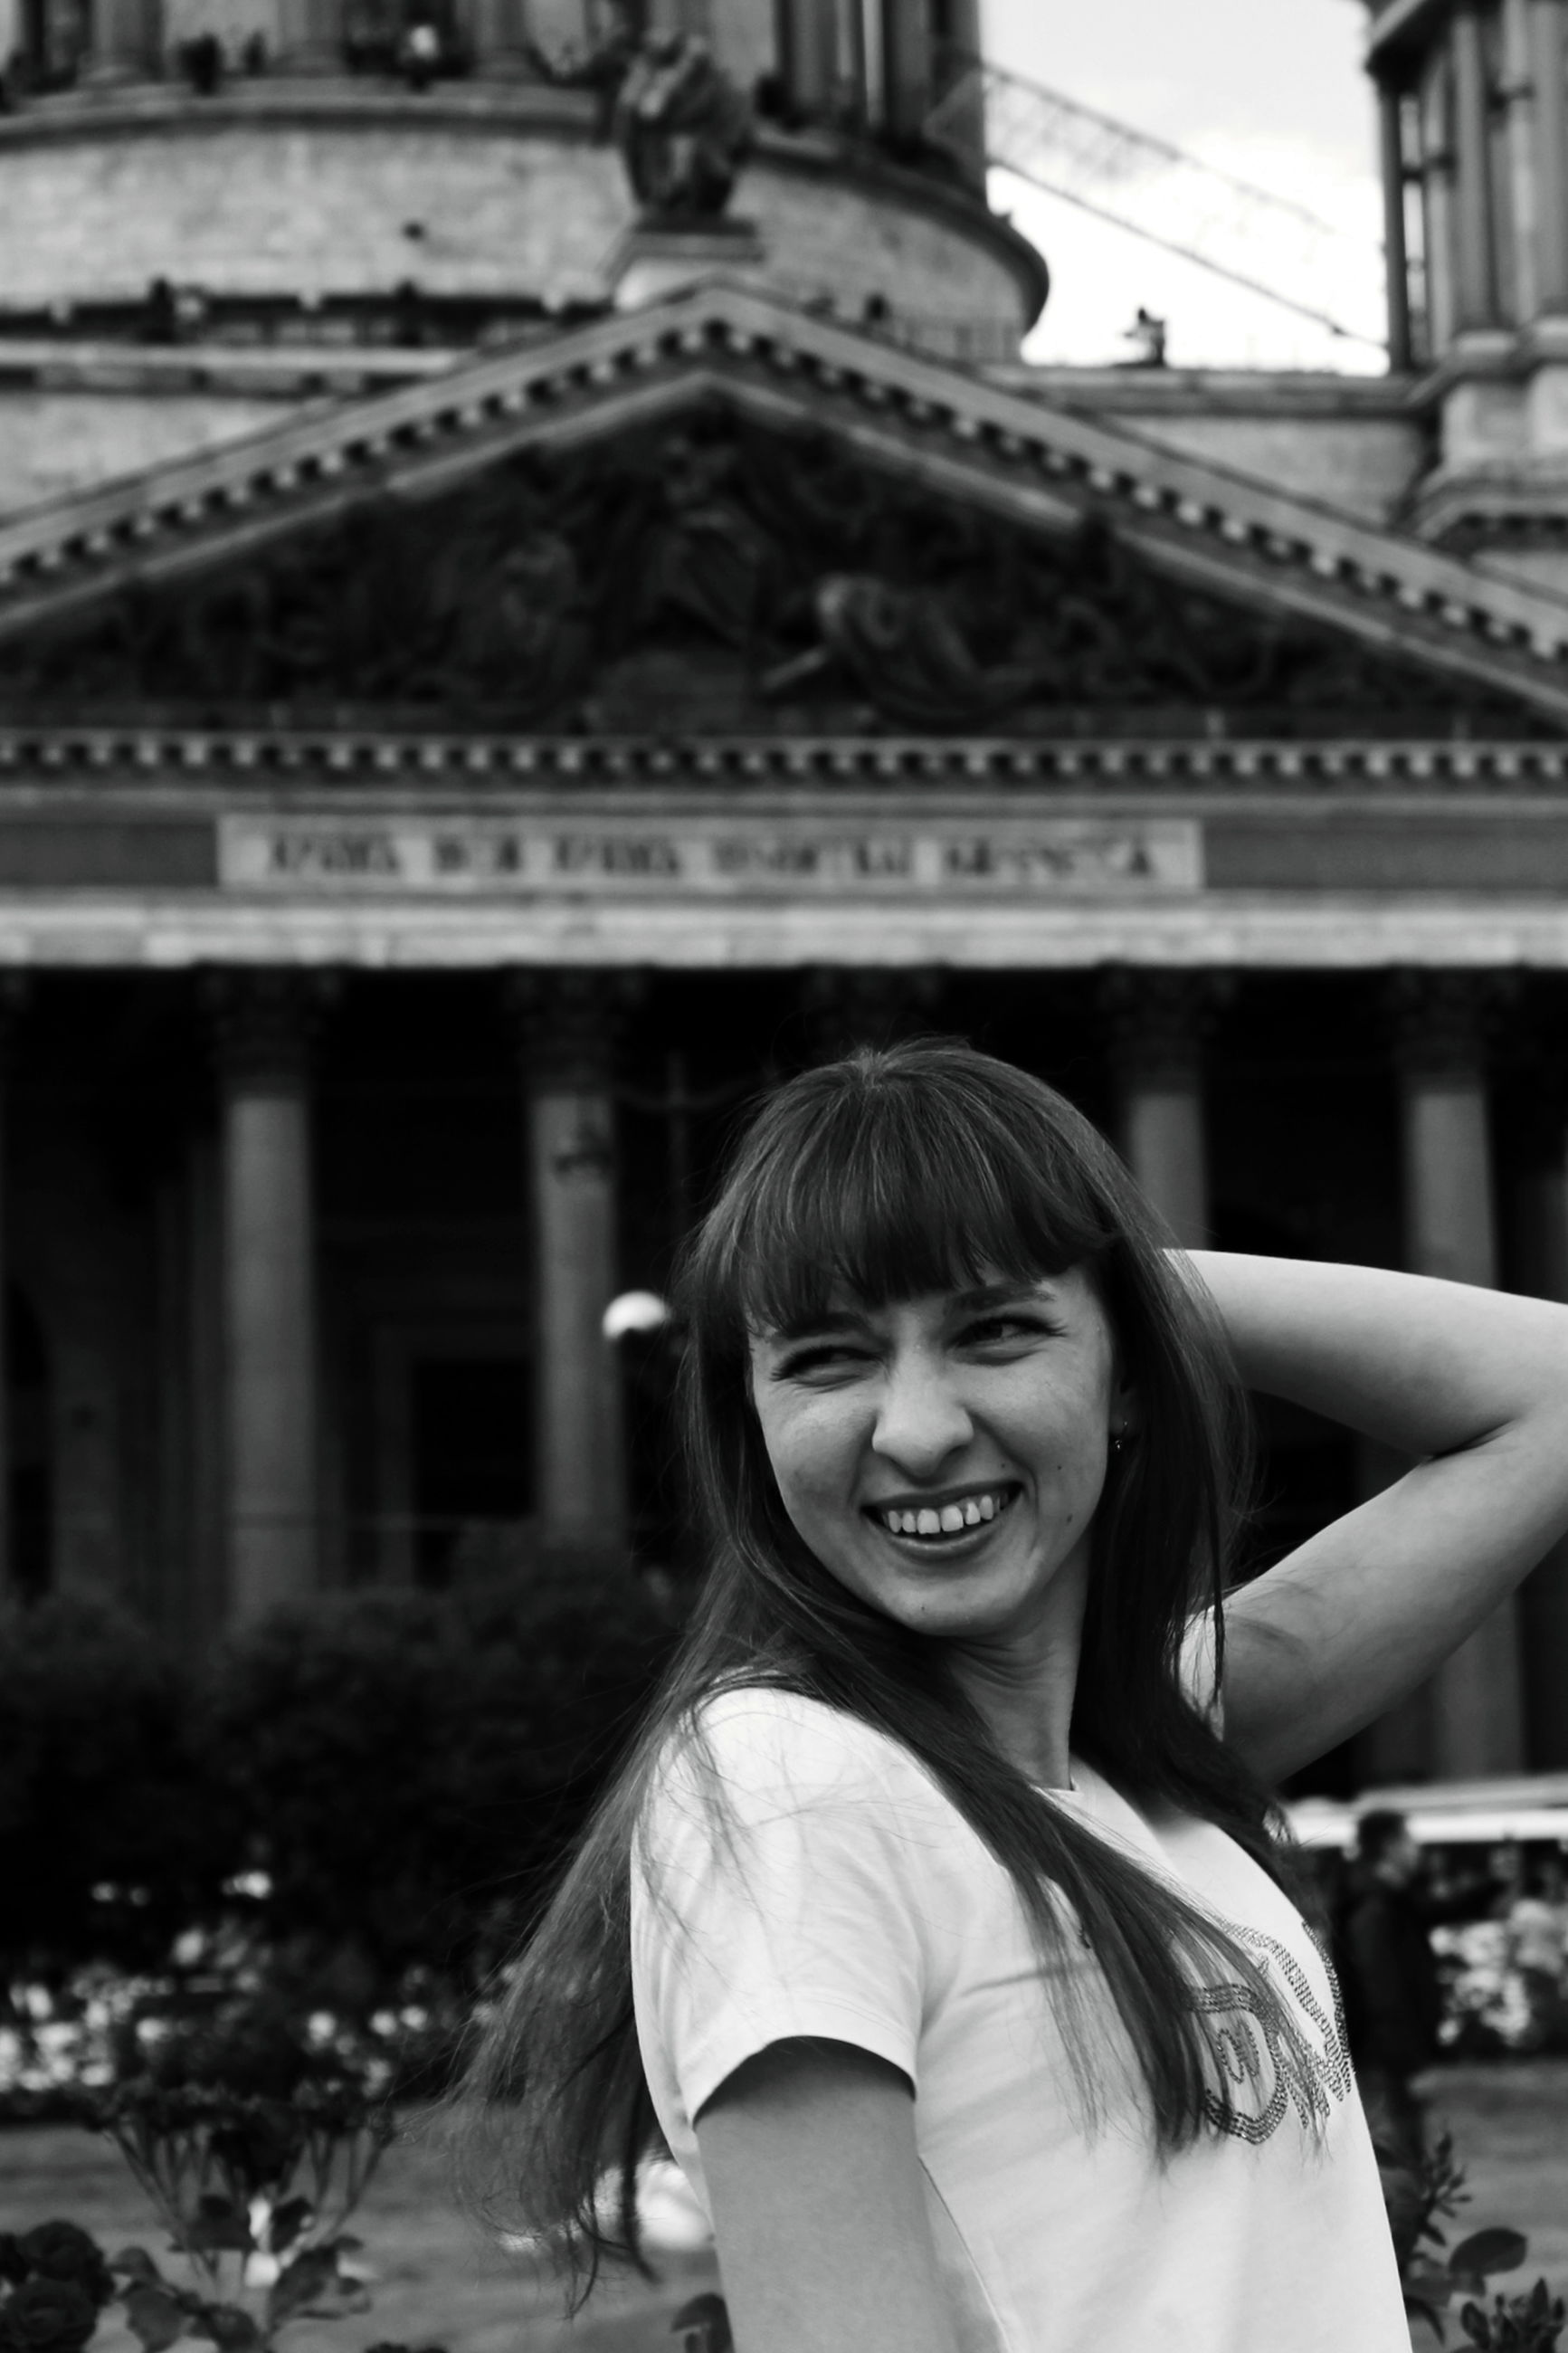 portrait, real people, happiness, one person, smiling, architecture, long hair, hair, emotion, hairstyle, looking at camera, built structure, building exterior, focus on foreground, lifestyles, teeth, women, toothy smile, young adult, headshot, beautiful woman, outdoors, bangs